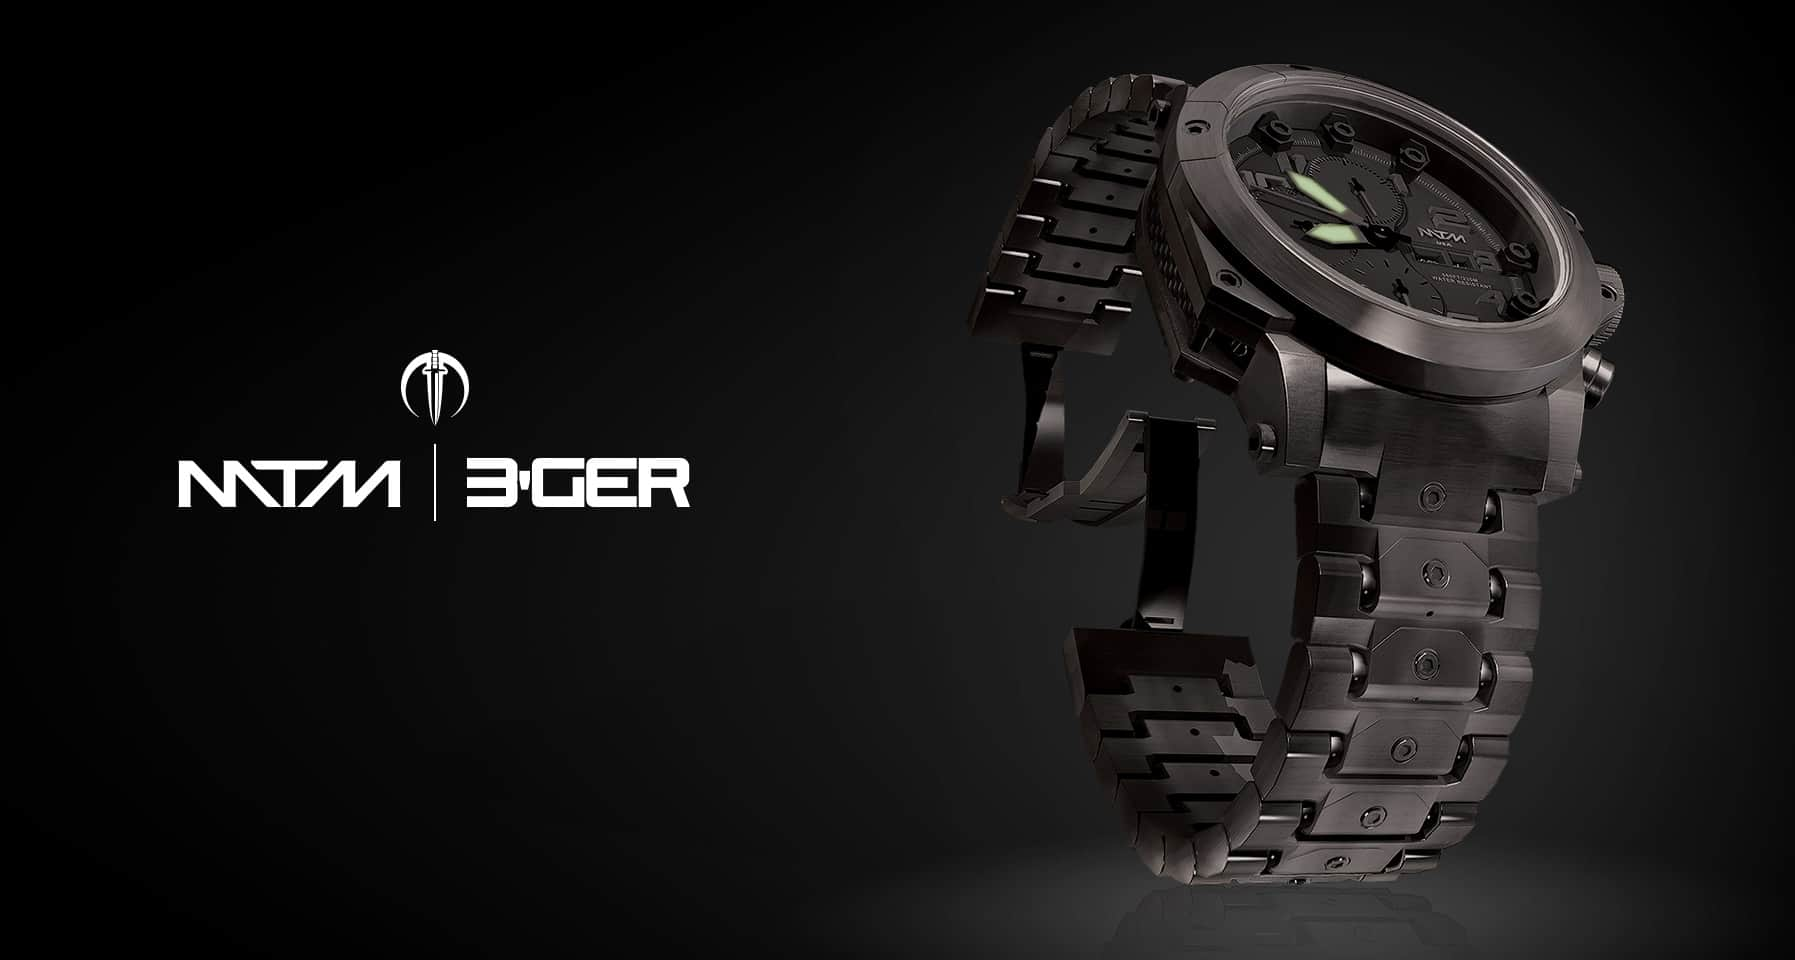 MTM 3-GER Watch